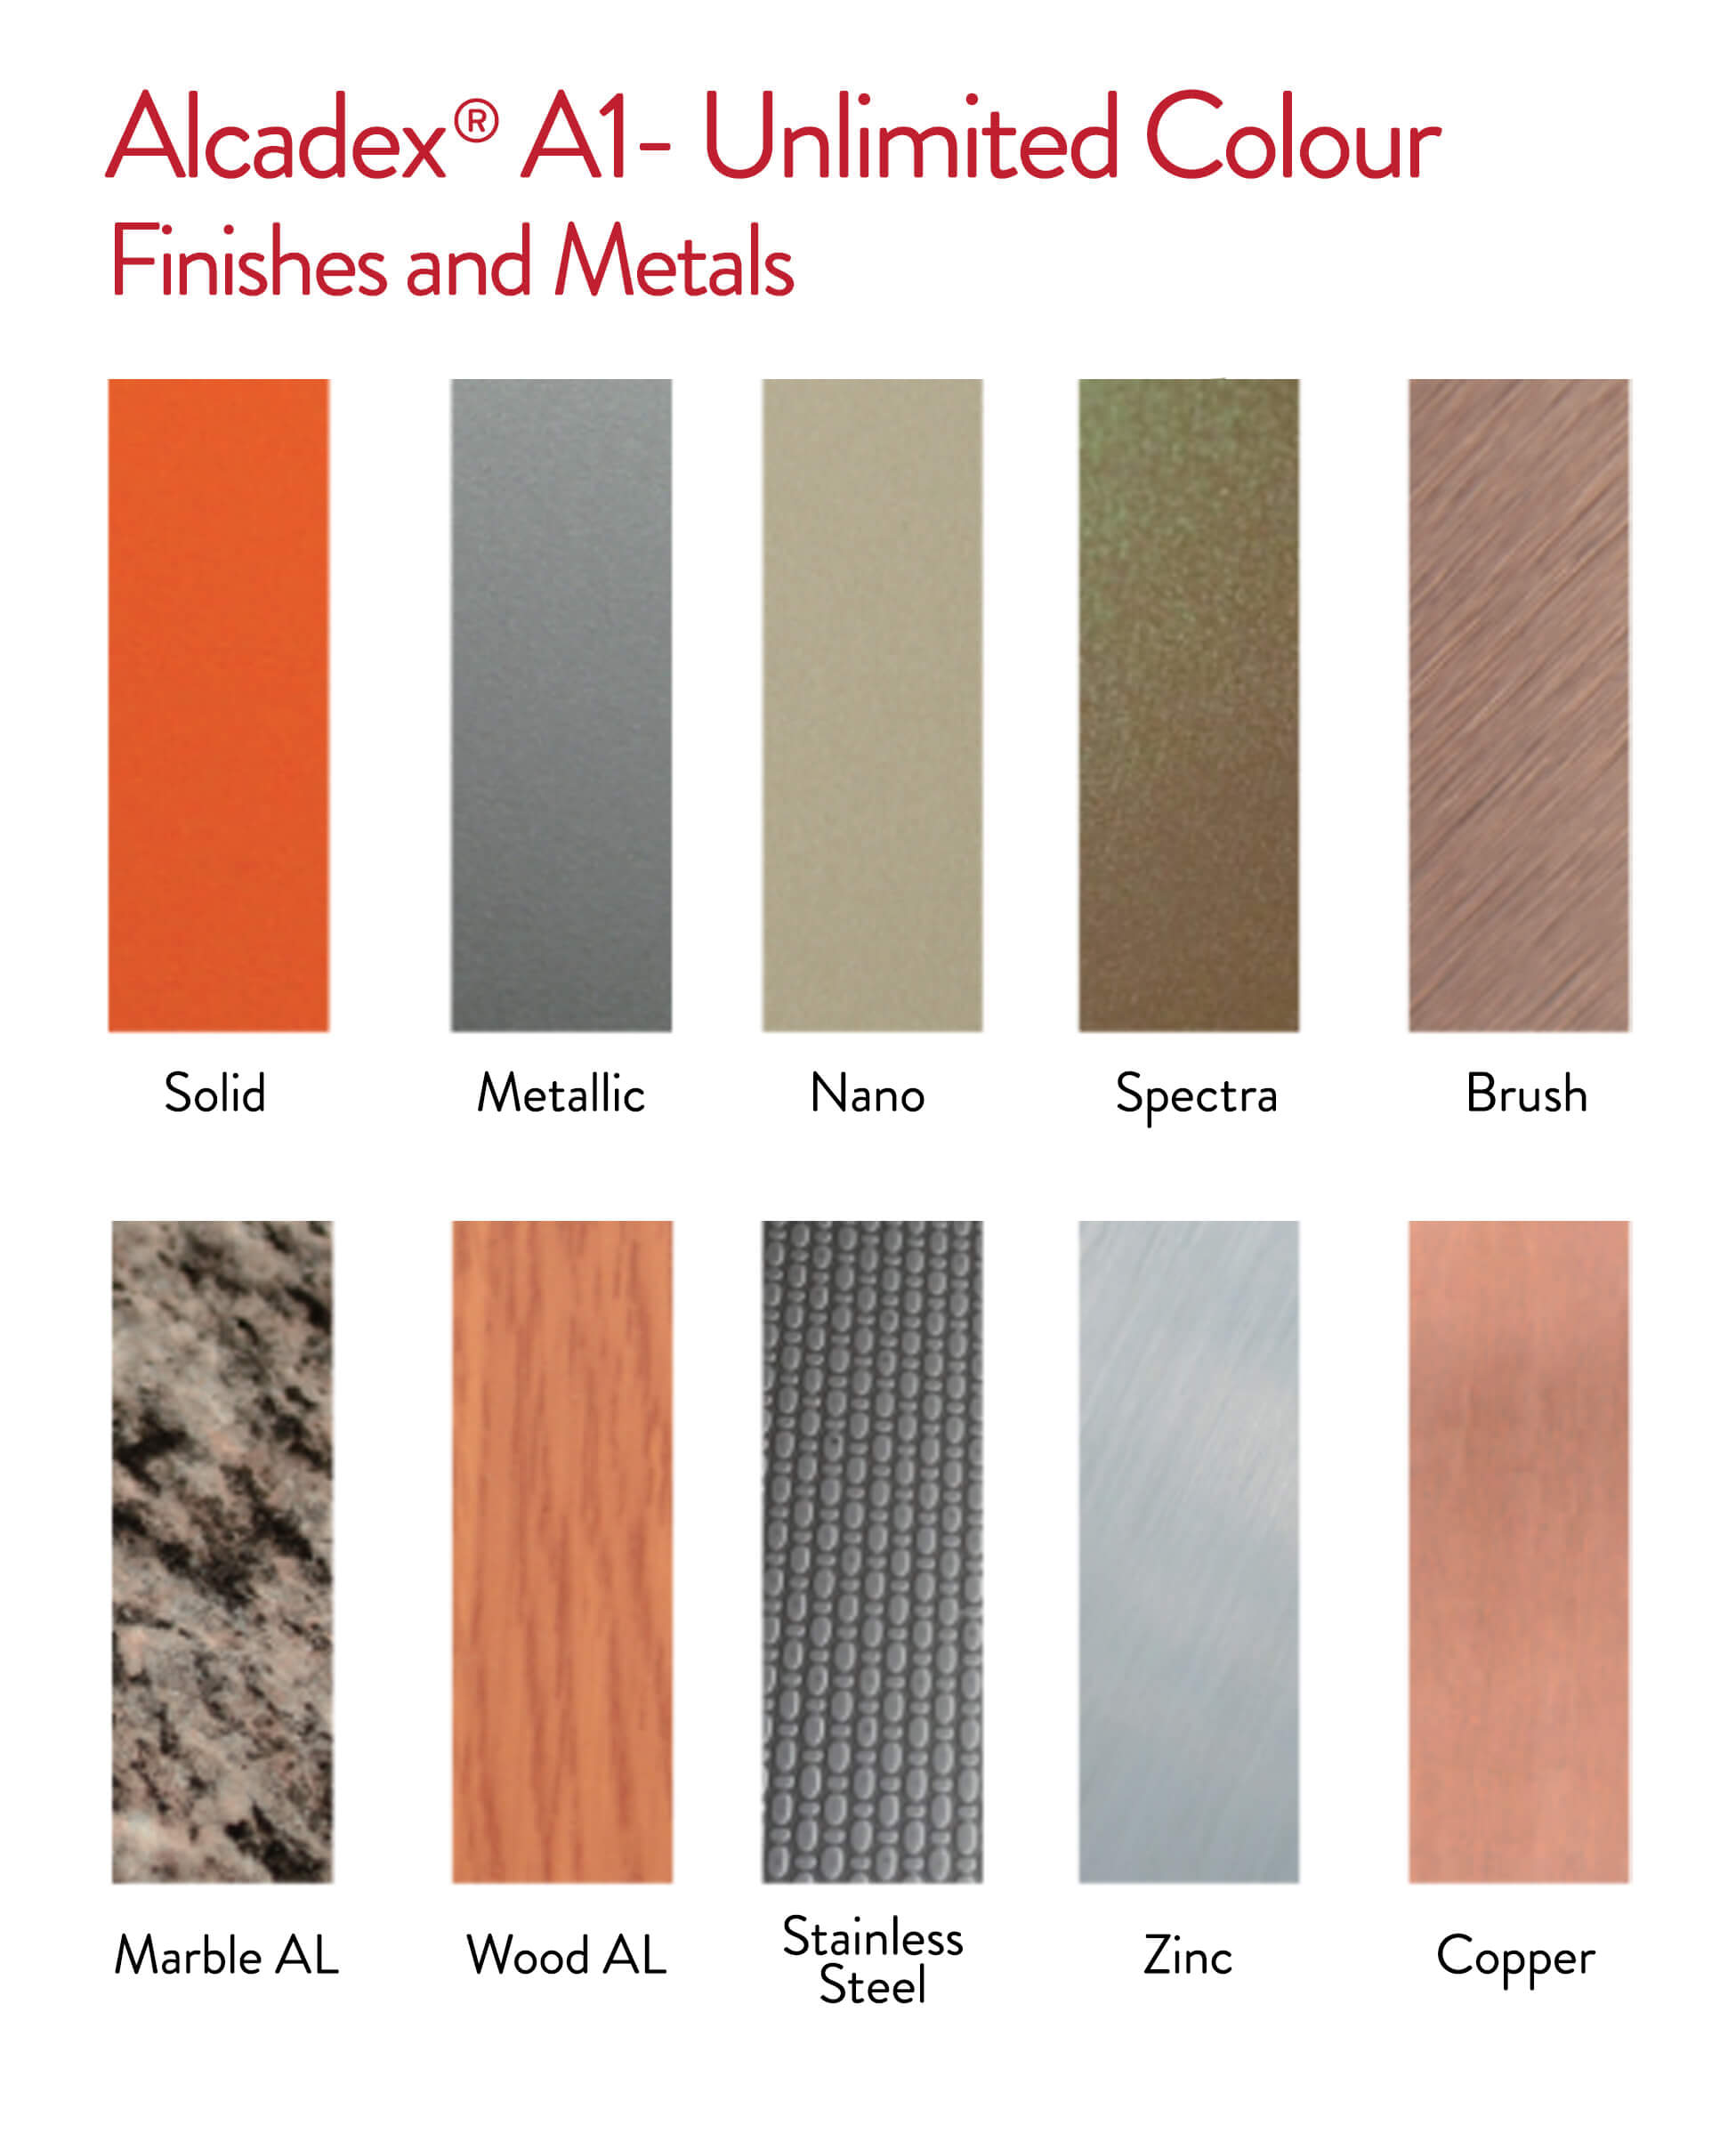 Alcadex home alcadex a1 unlimited colour finishes and metals nvjuhfo Image collections